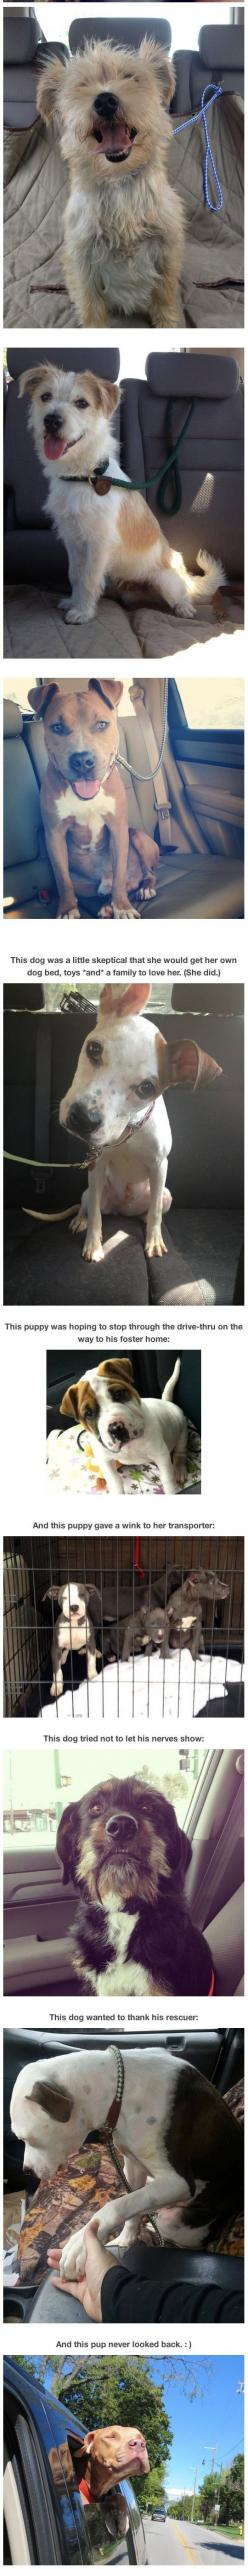 Photos of dogs taken after leaving the shelter and getting in the car.: Animal Rescue, Animal Shelters, Dogs In Shelters, Humor Funnypictures, Animals Dogs, Cars, Photo